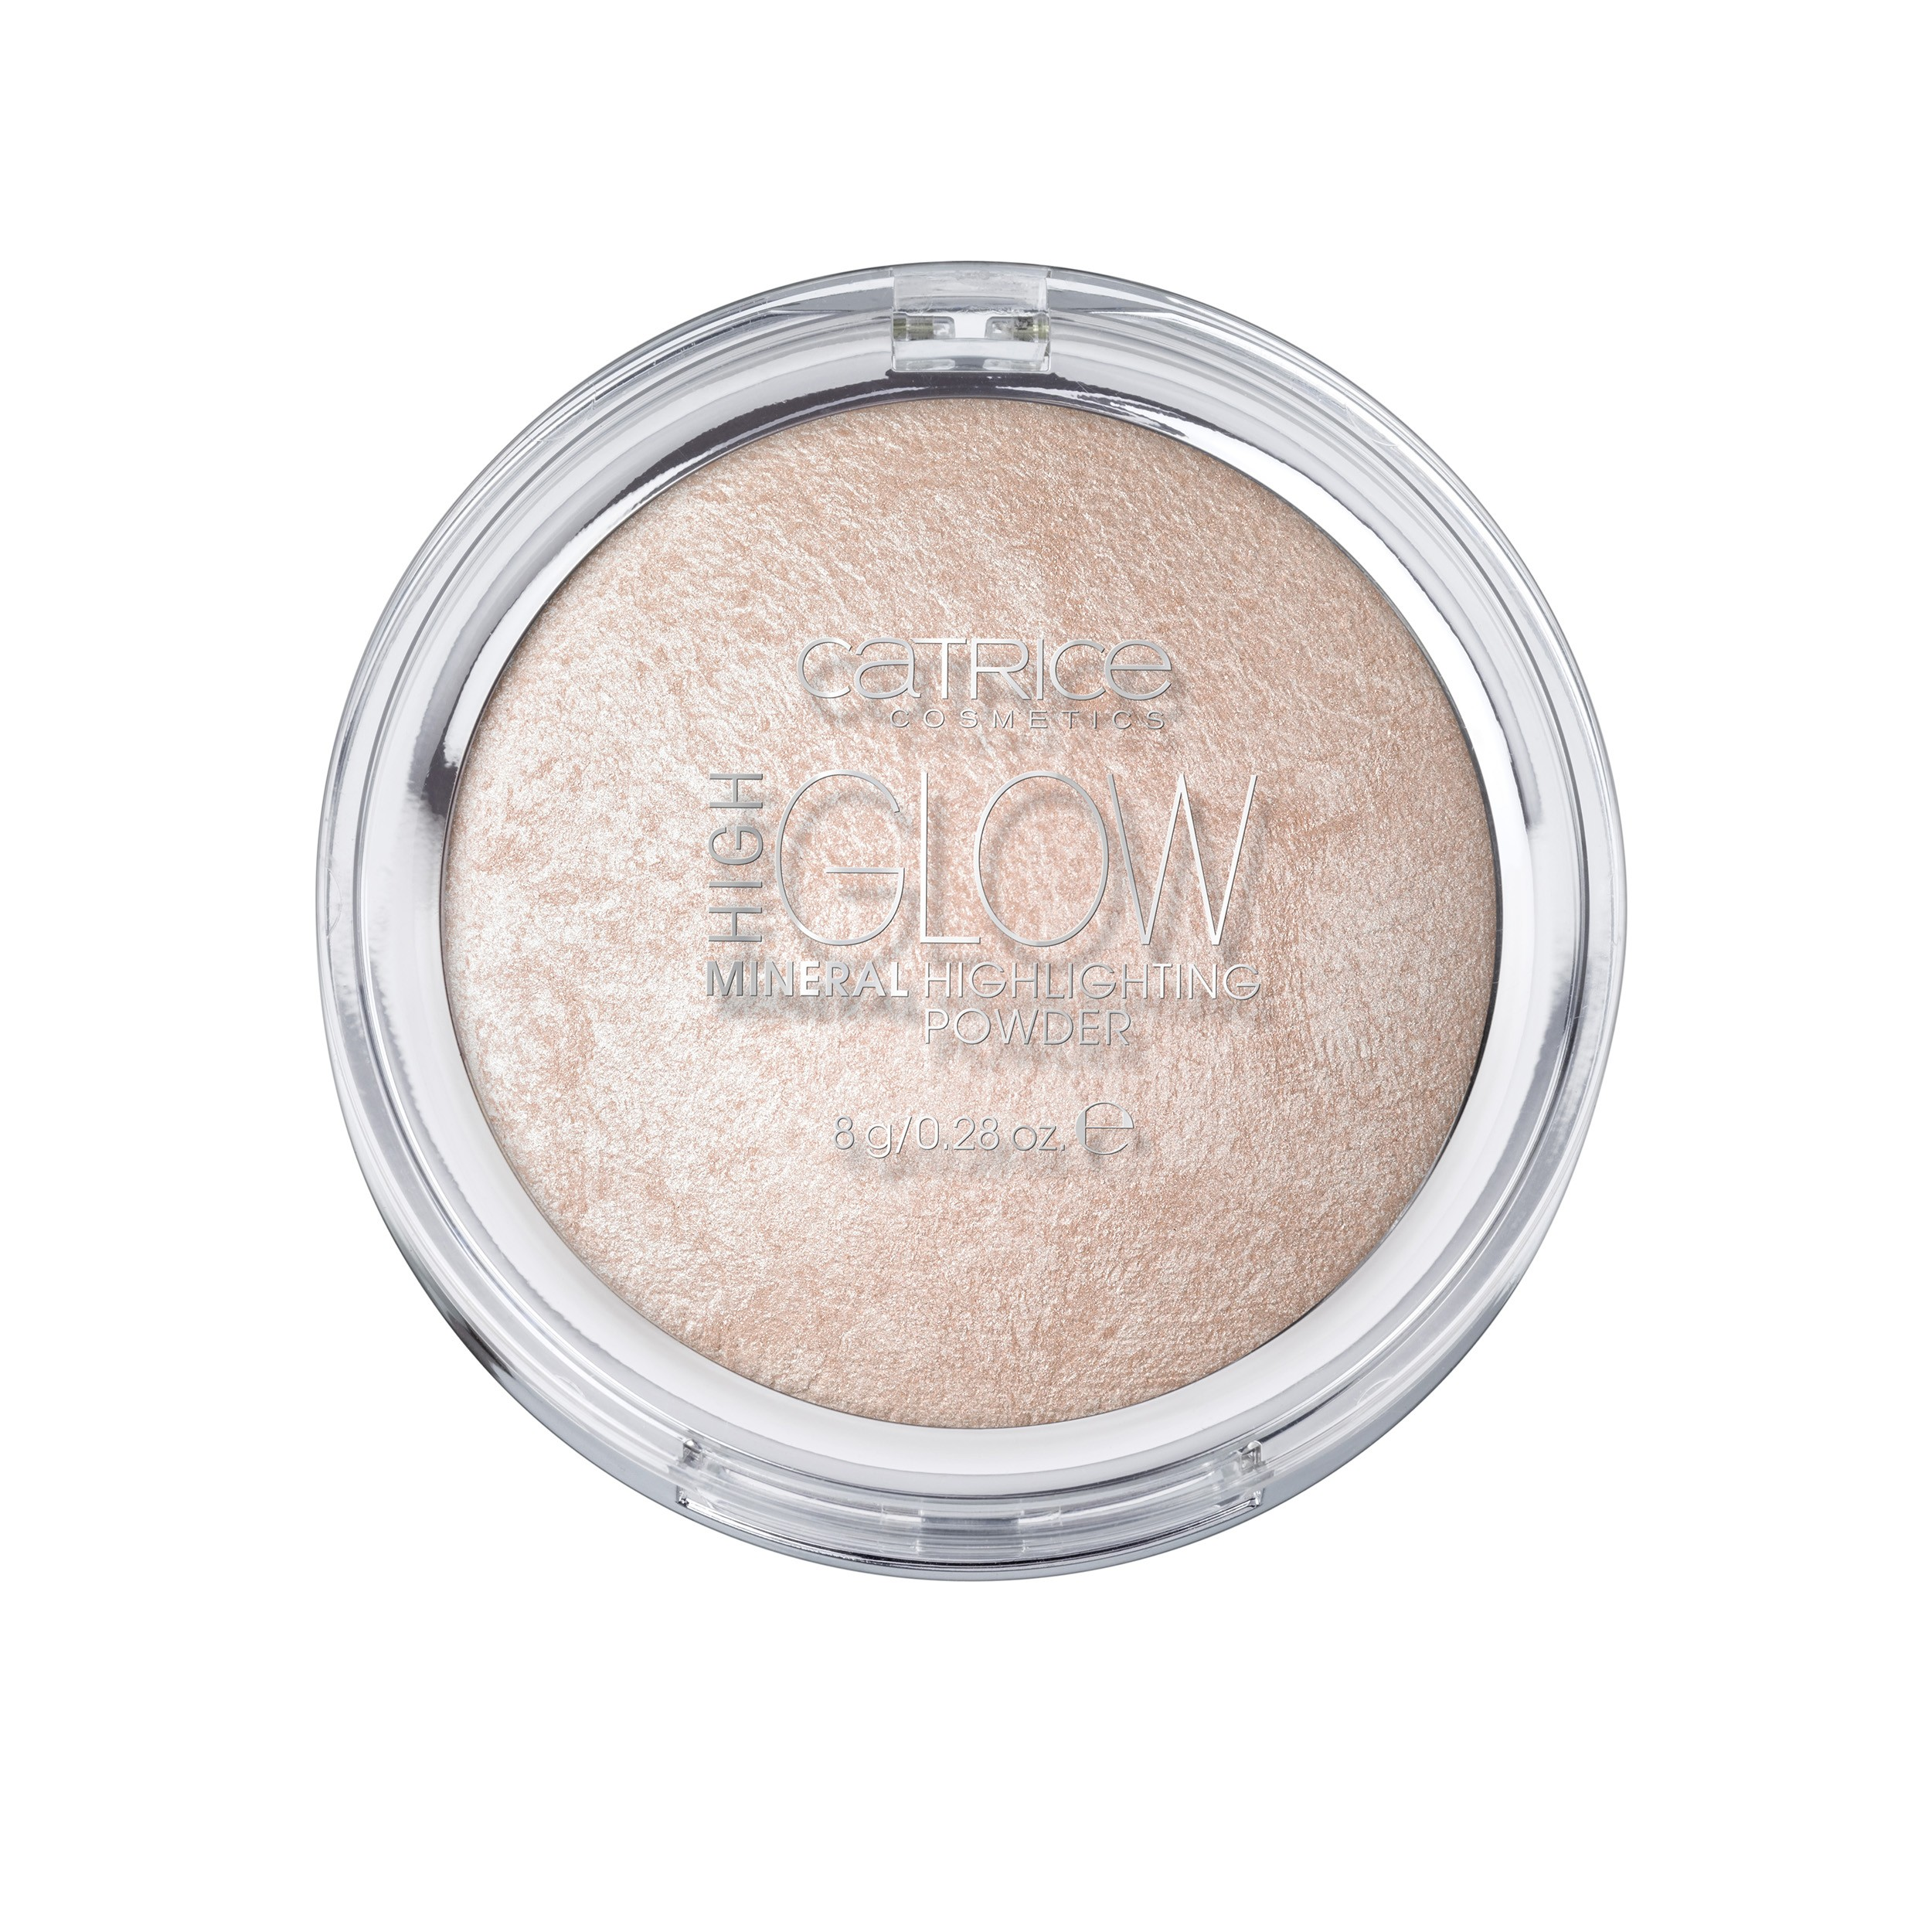 High Glow Mineral Highlighting Powder